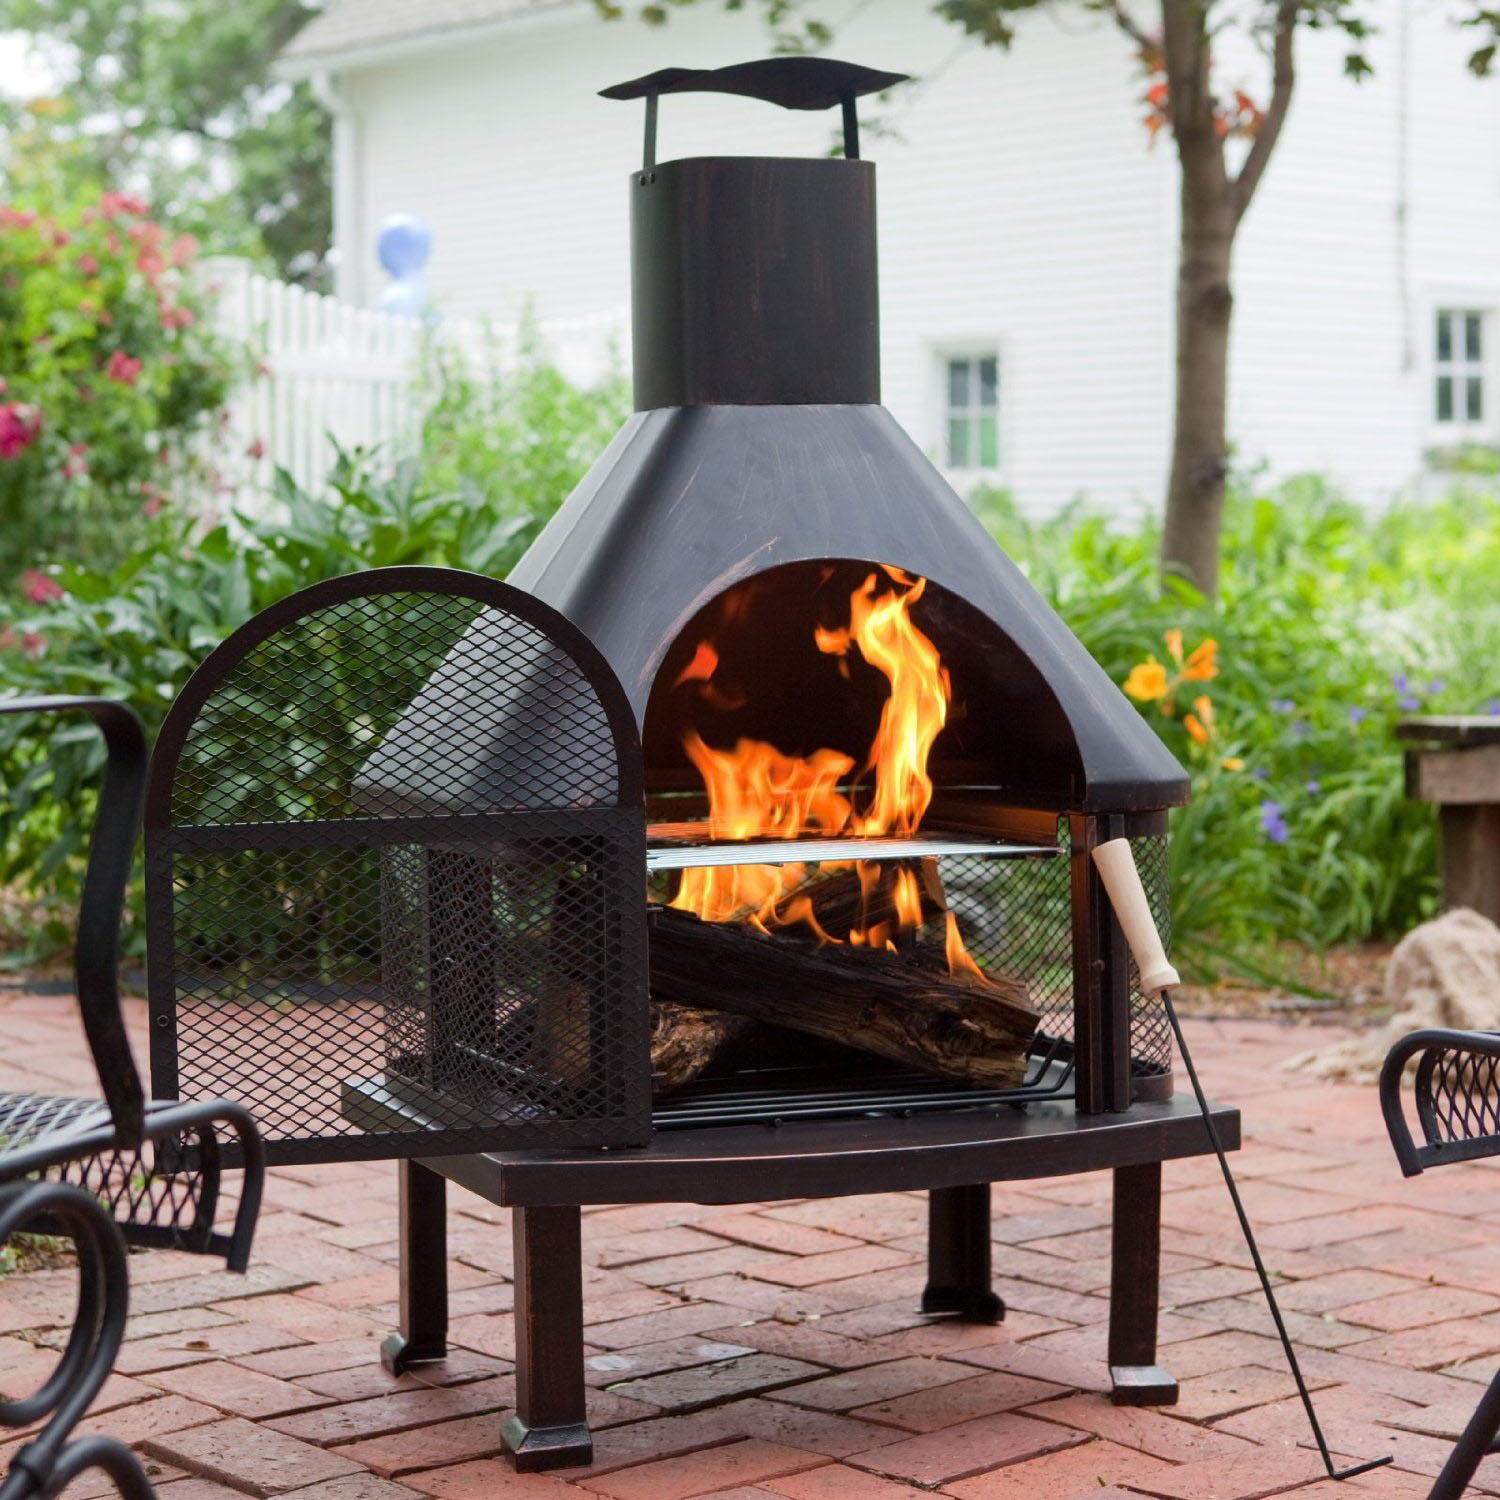 Outdoor Fire Pit Ideas For The Backyard | Home Decorator Shop on Fireplace In Yard  id=50226